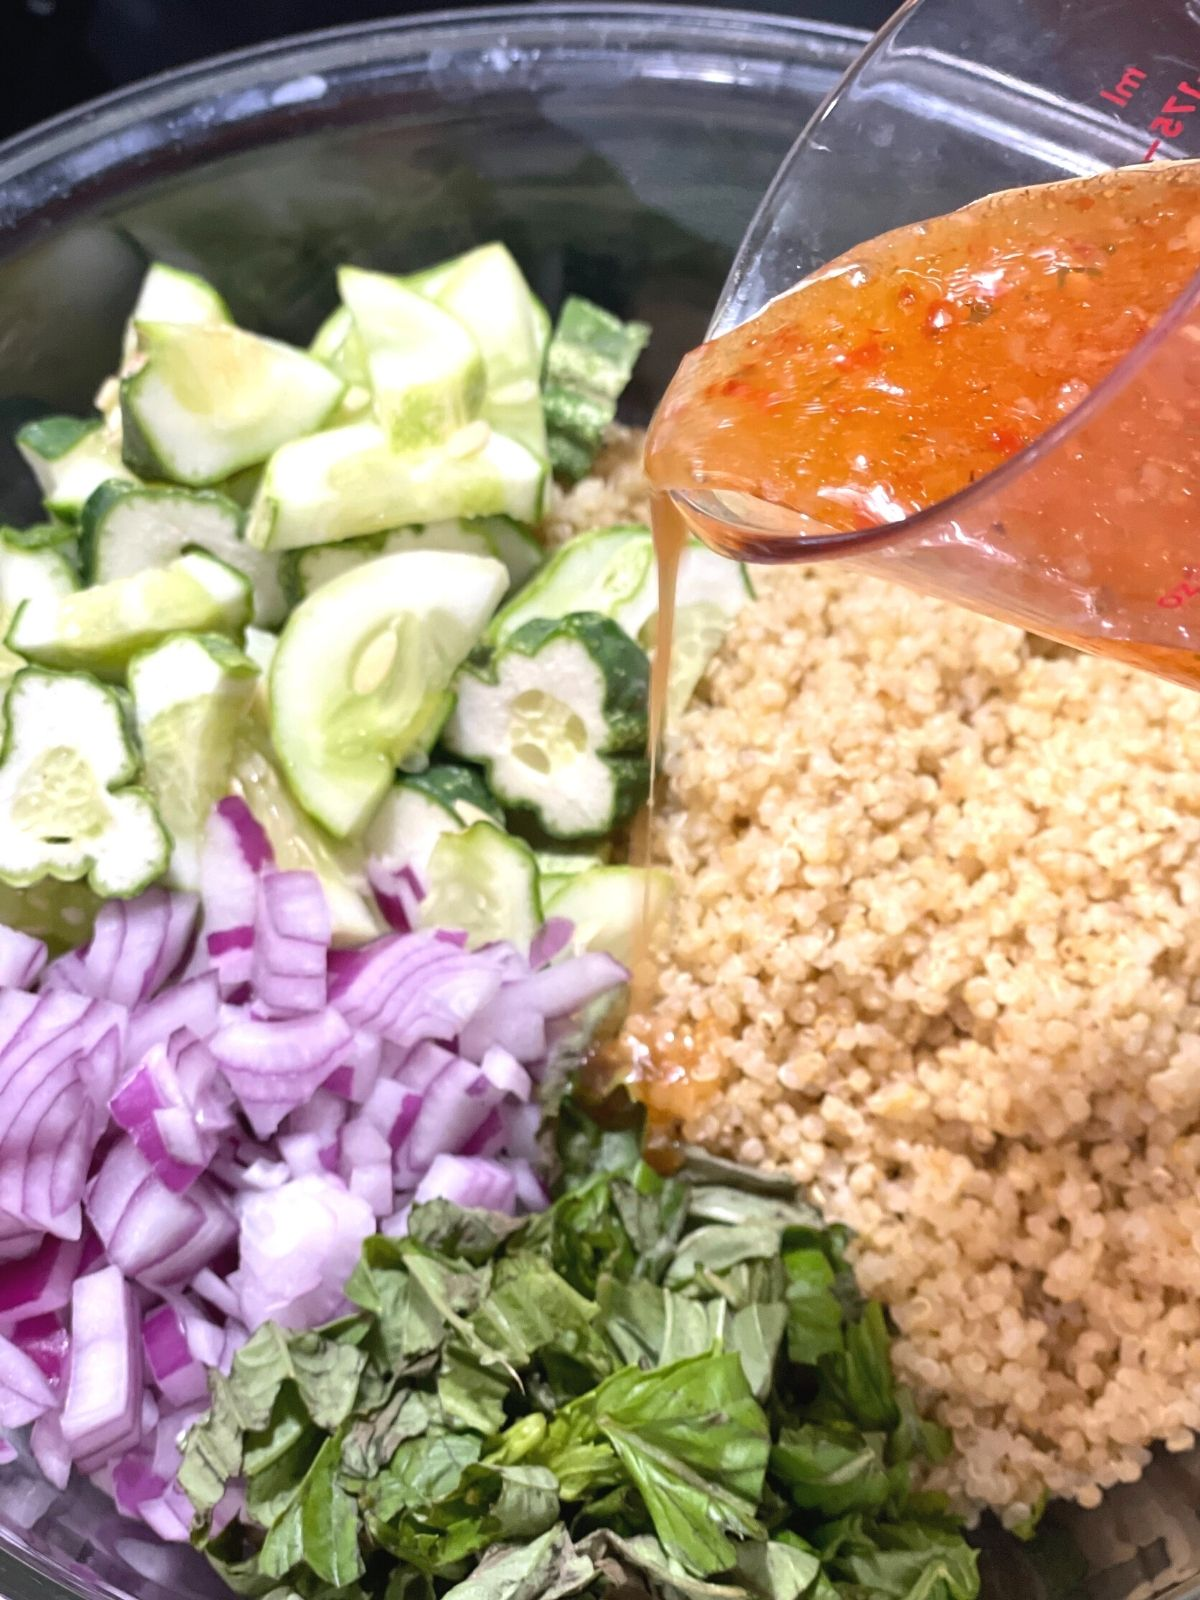 pouring italian dressing into a bowl of cucumber salad ingredients.